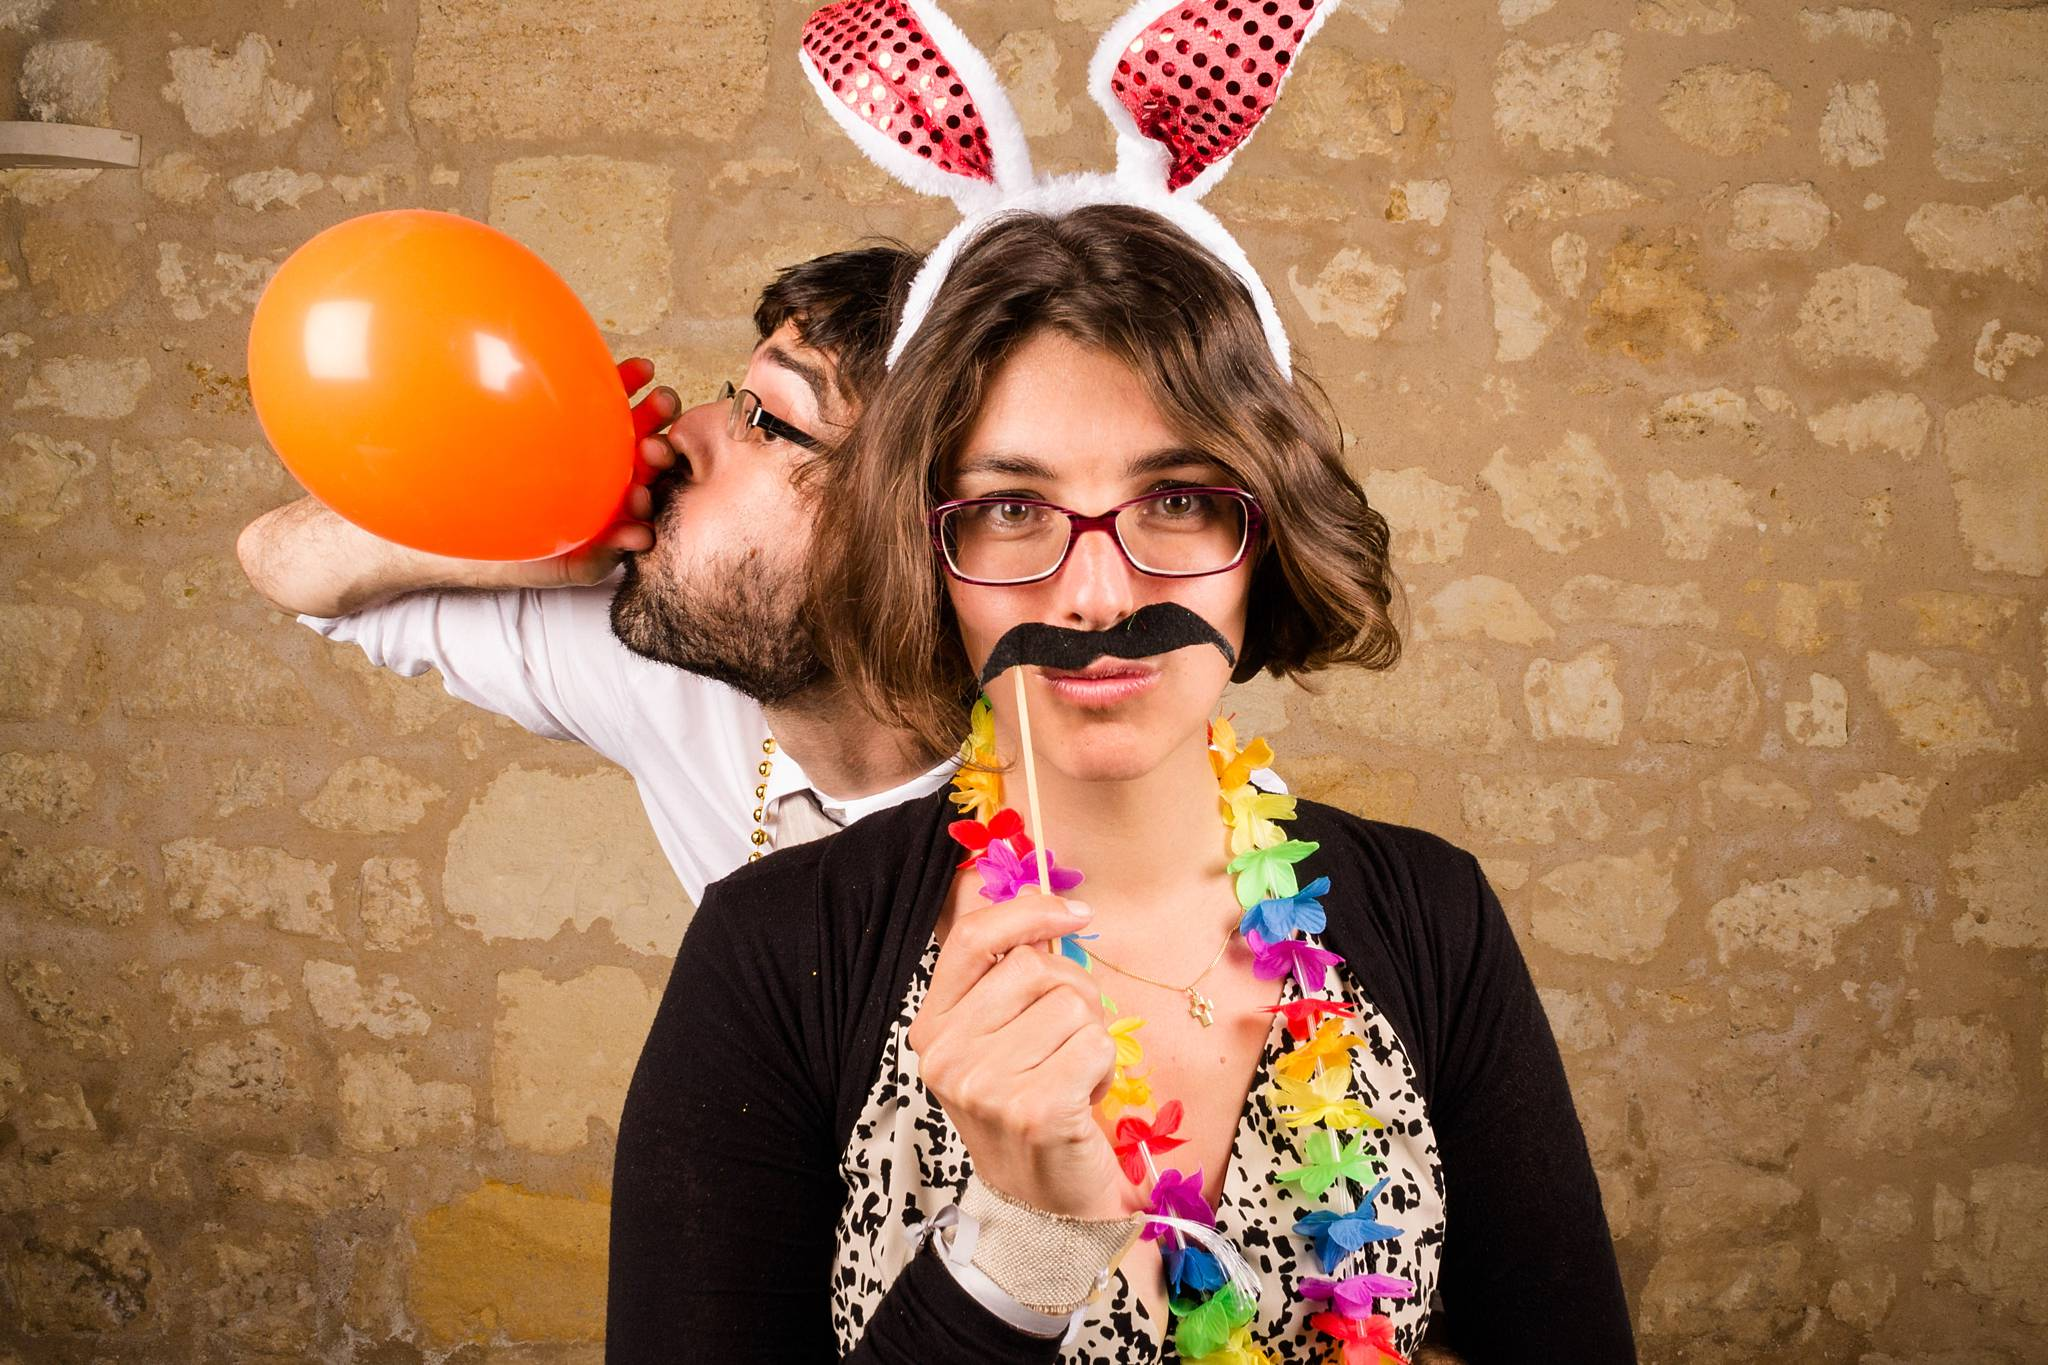 05_photobooth-mariage-bordeaux-gironde-dordogne-charentes-alexandre-roschewitz-photographies_2048px